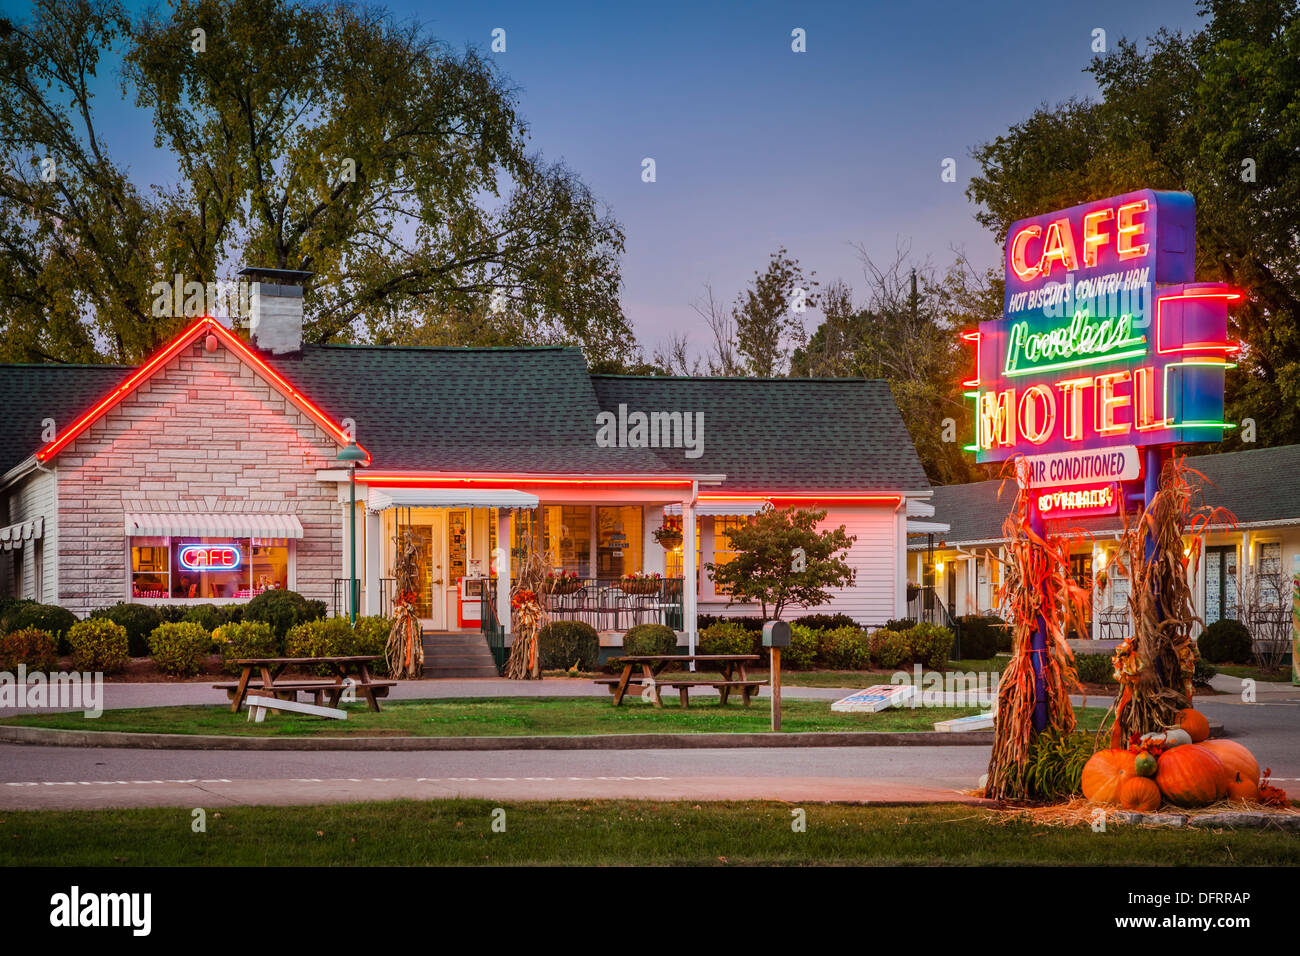 The famous Loveless Cafe and Motel near Nashville ...